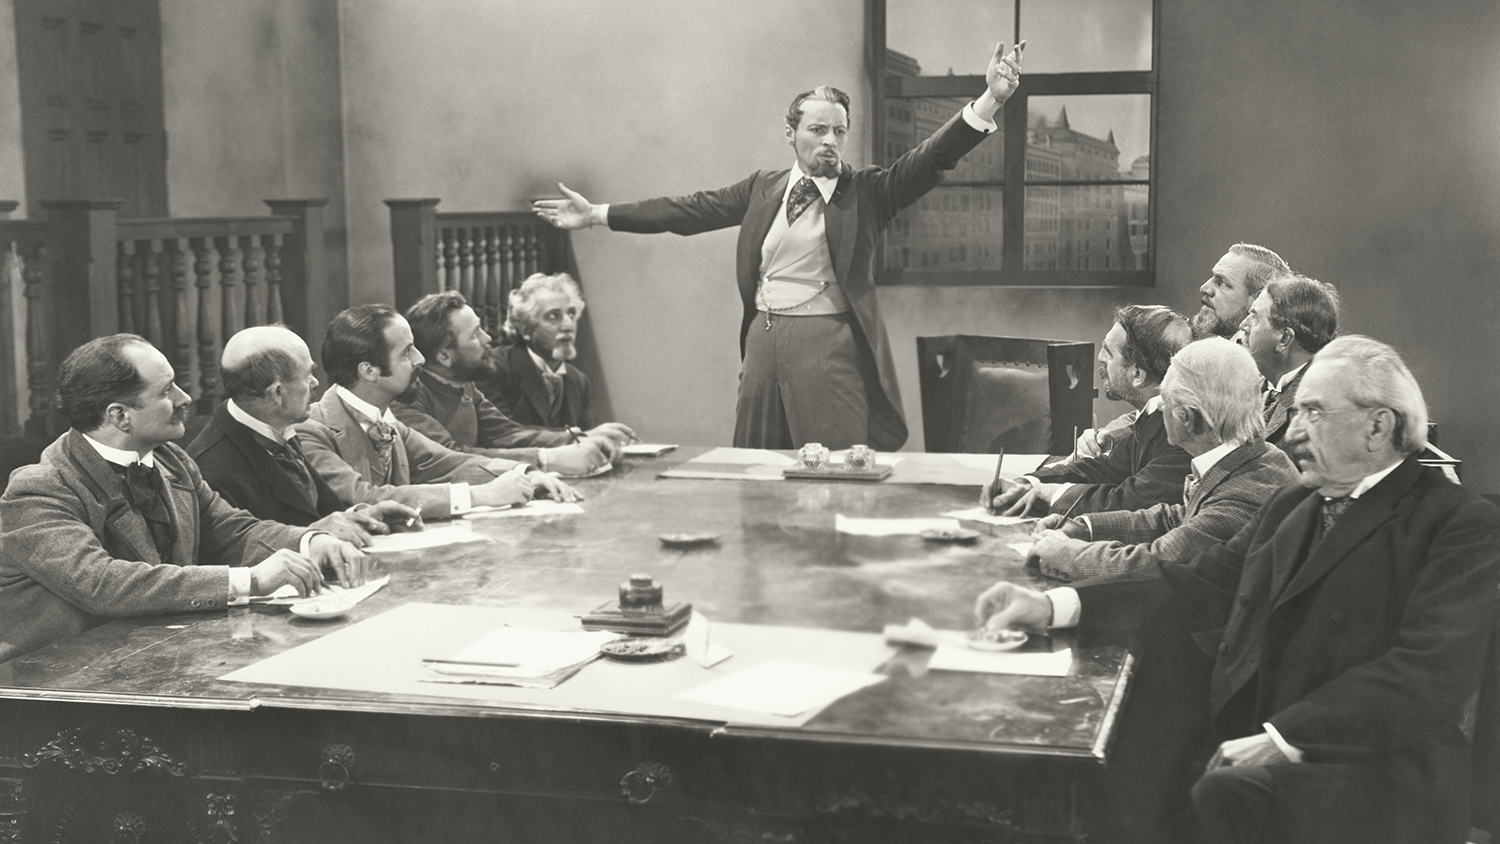 Man in a waistcoat talking to a committee of similarly dressed old white men